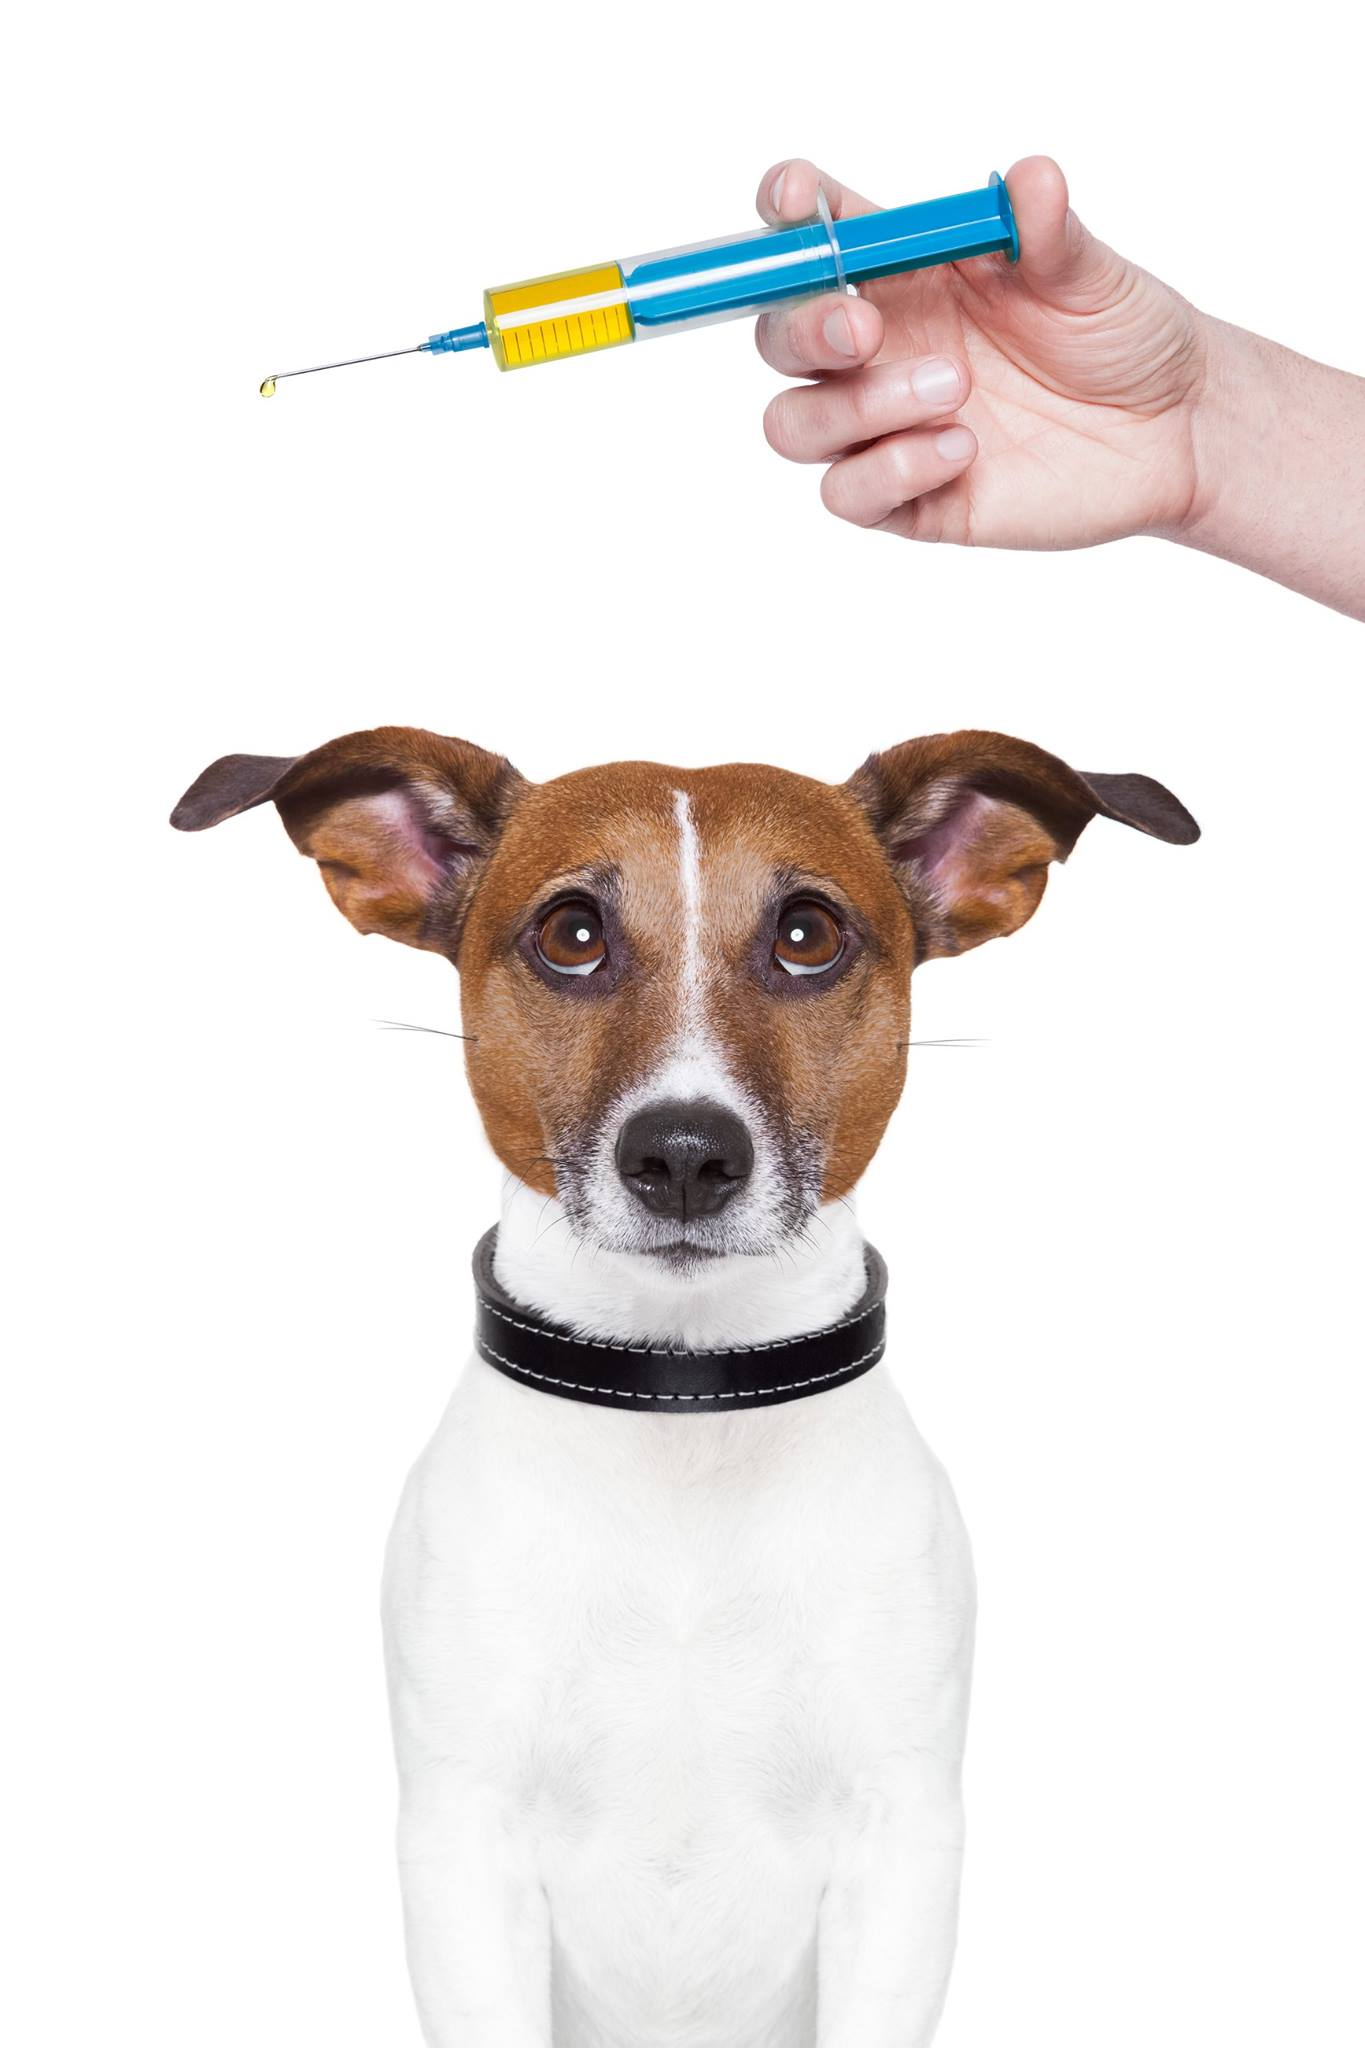 Adverse Vaccine Reactions In Dogs And Cats